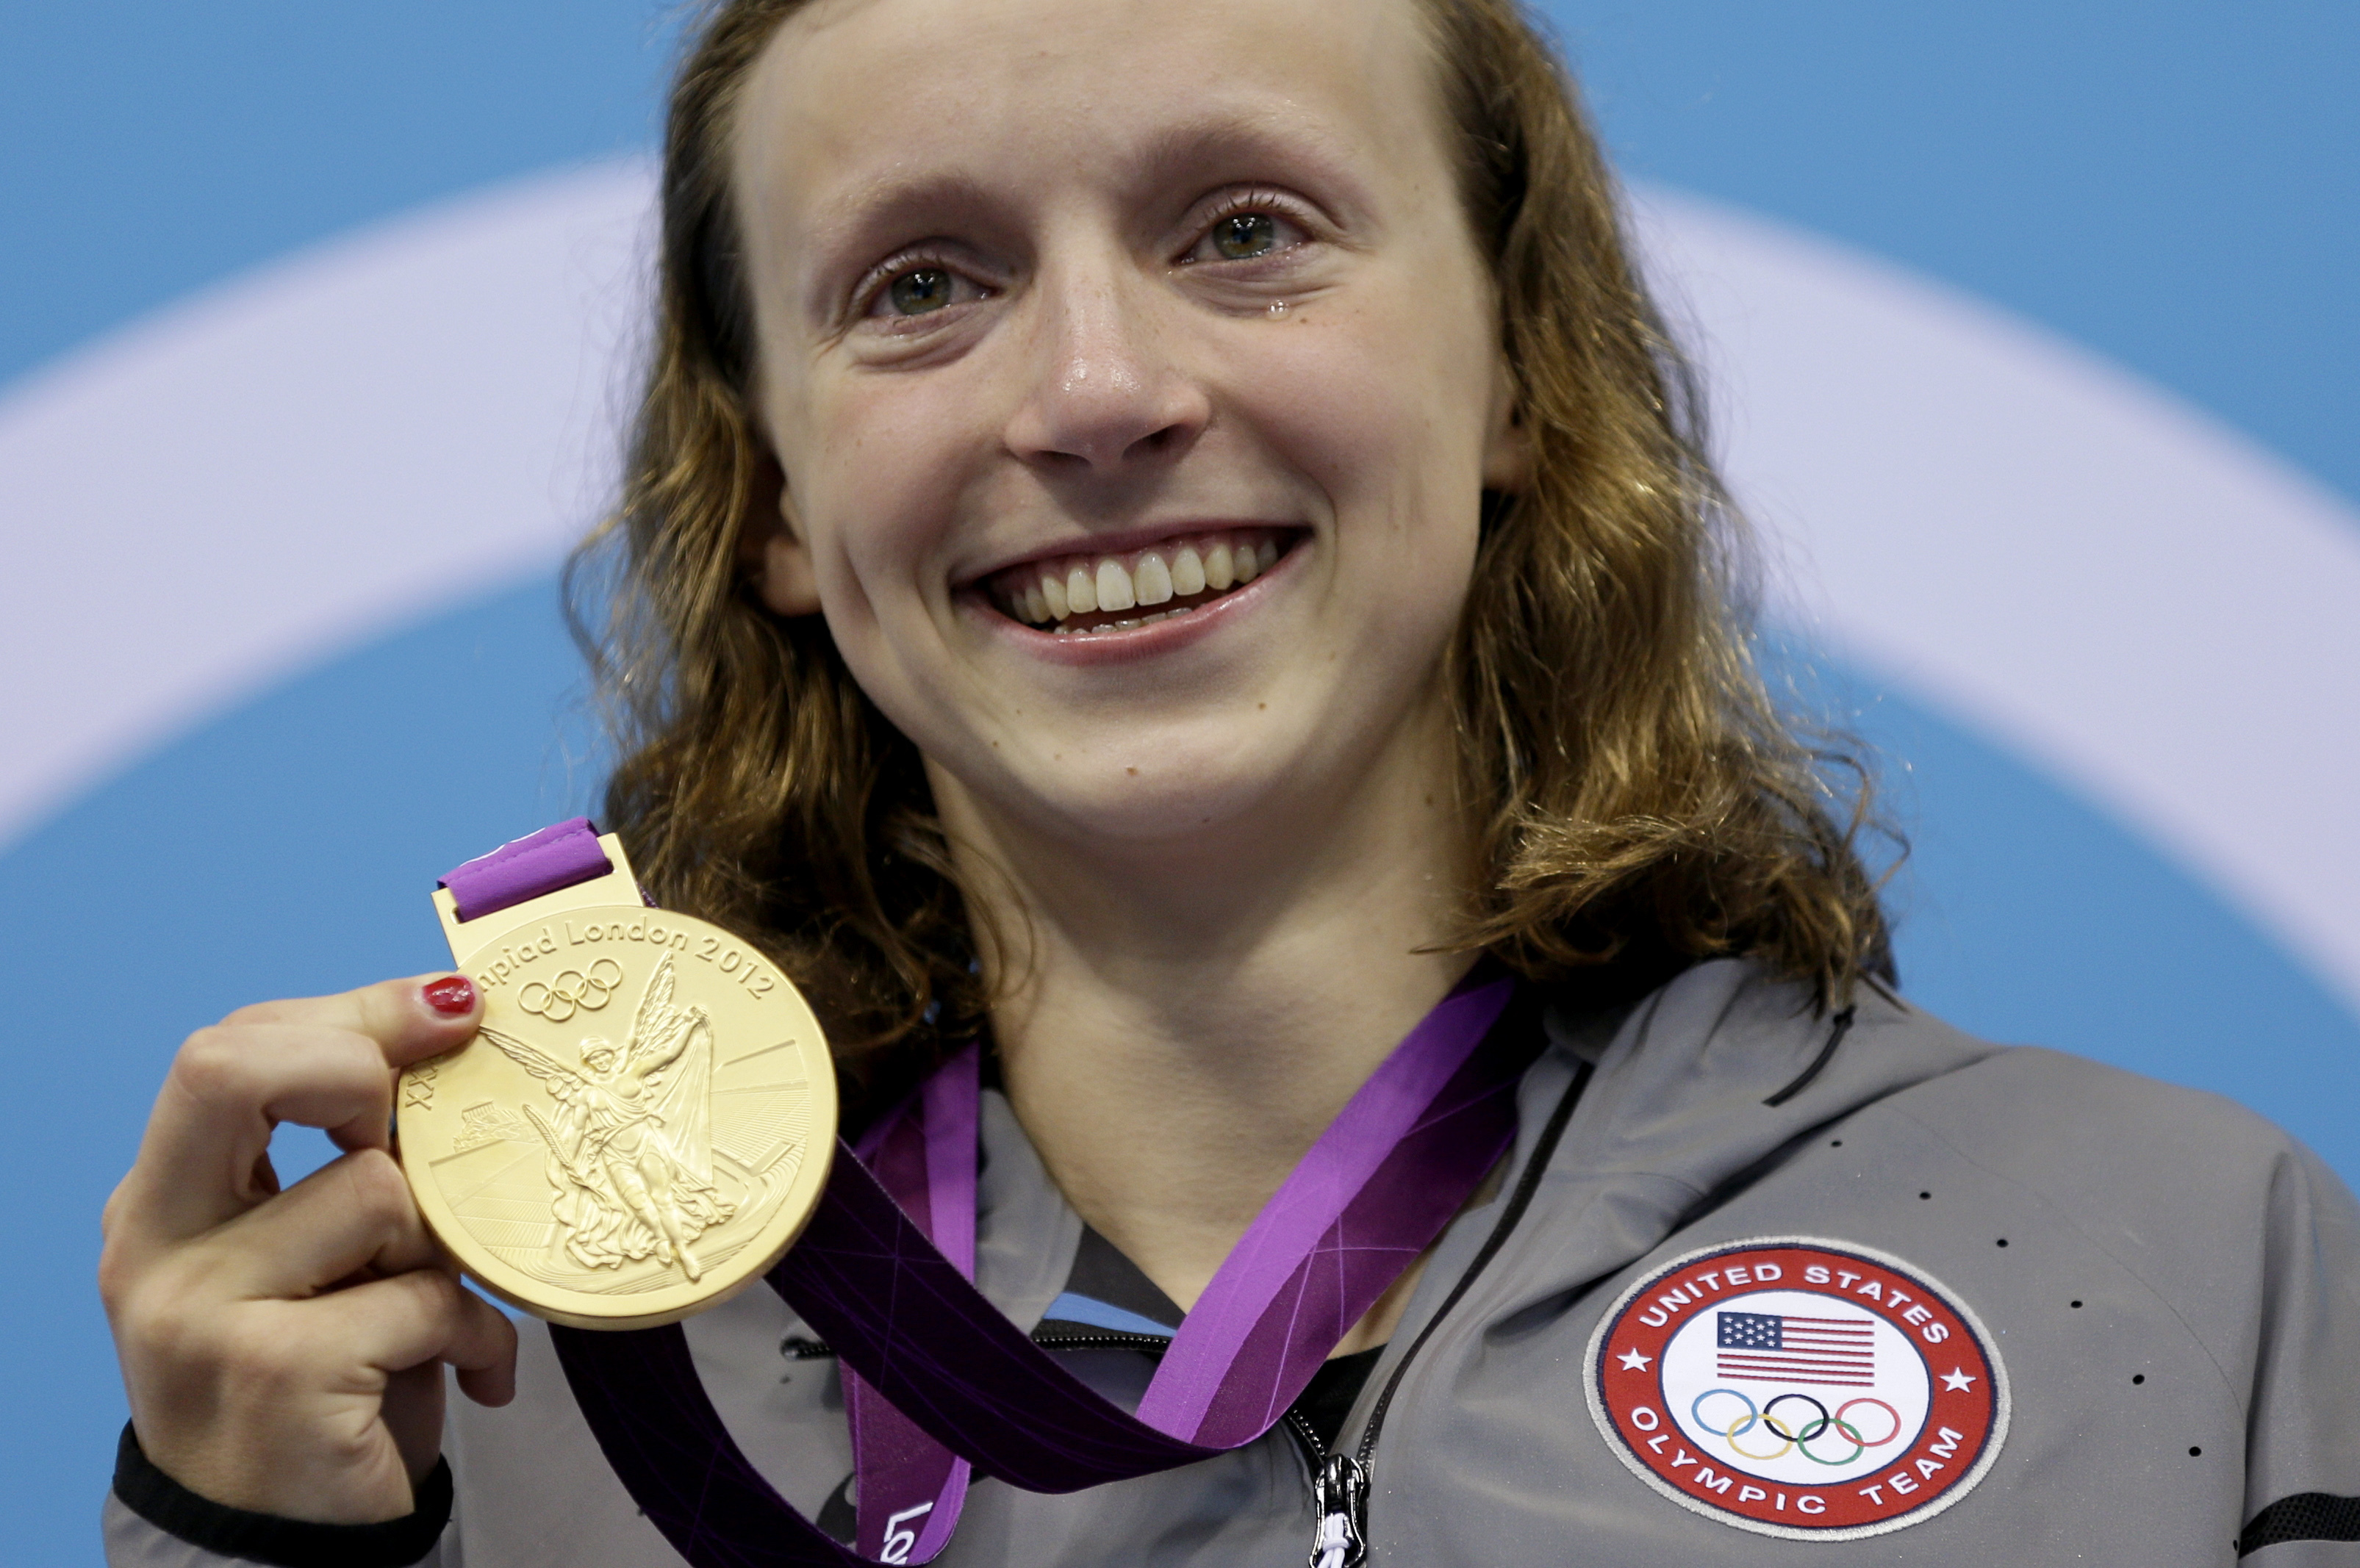 FILE - In this Aug. 3, 2012, file photo, Katie Ledecky, of the United States, poses on the podium with her gold medal for the women's 800-meter freestyle swimming event at the 2012 Summer Olympics in London. Disillusionment. Fear. Rage. In a divided Ameri